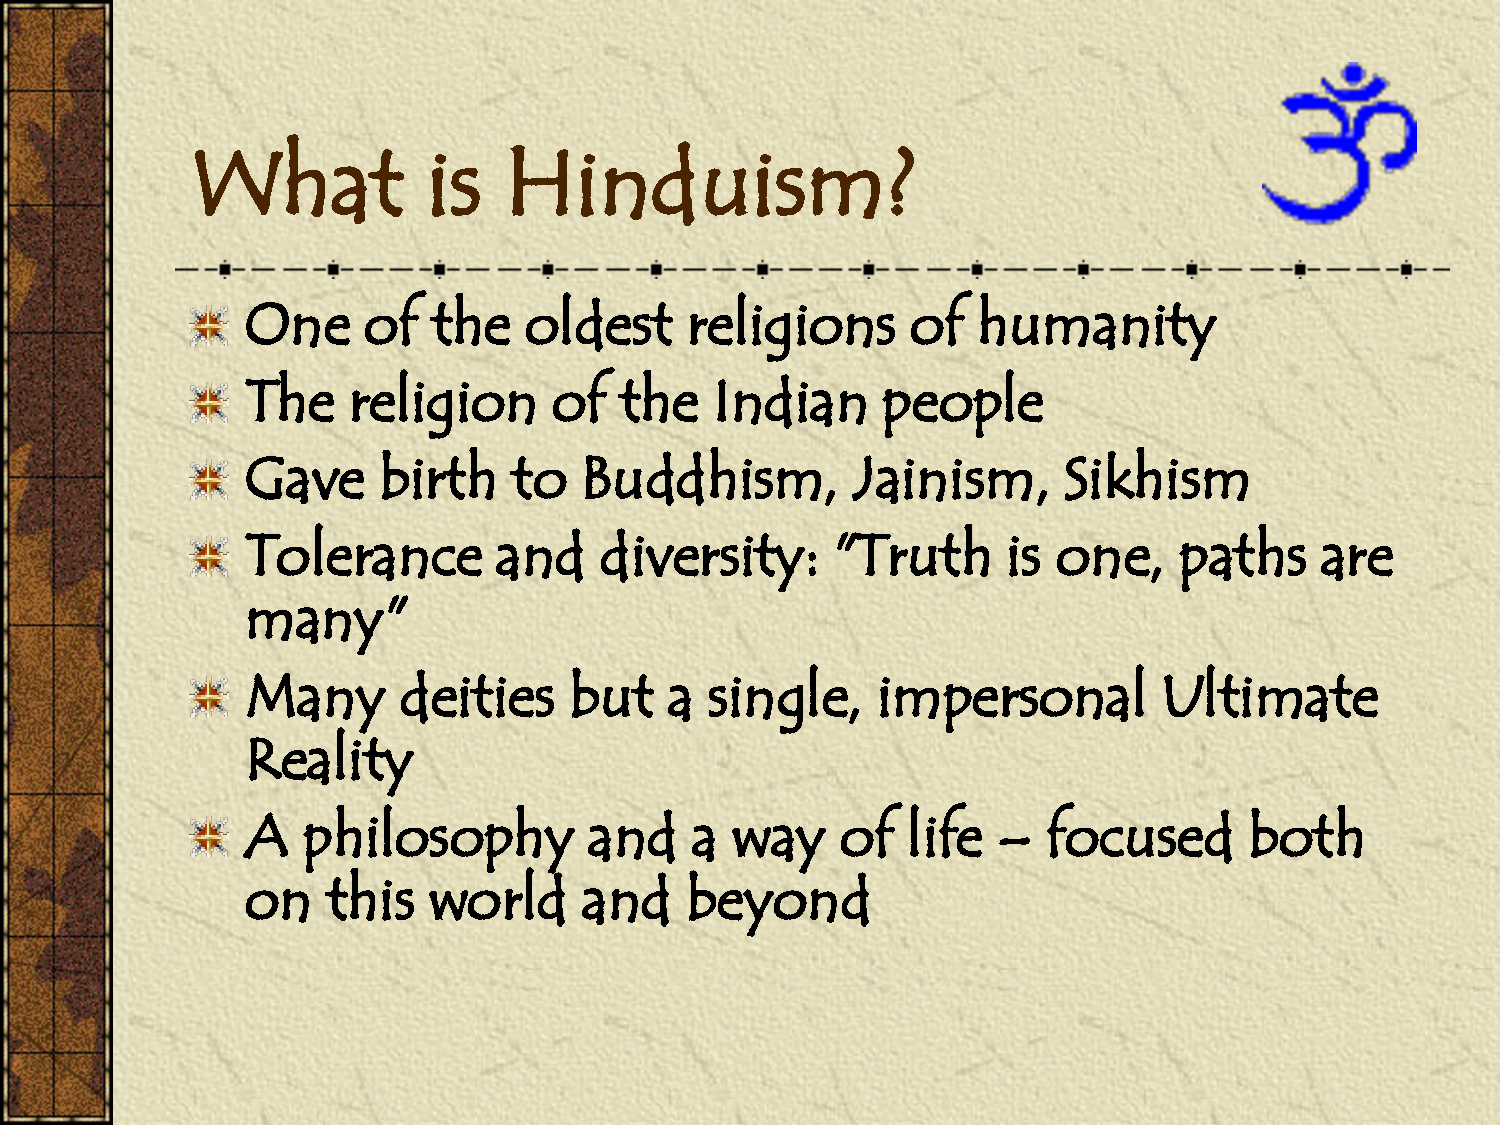 Hinduism What is Hinduism? Hinduism quotes, Hindu